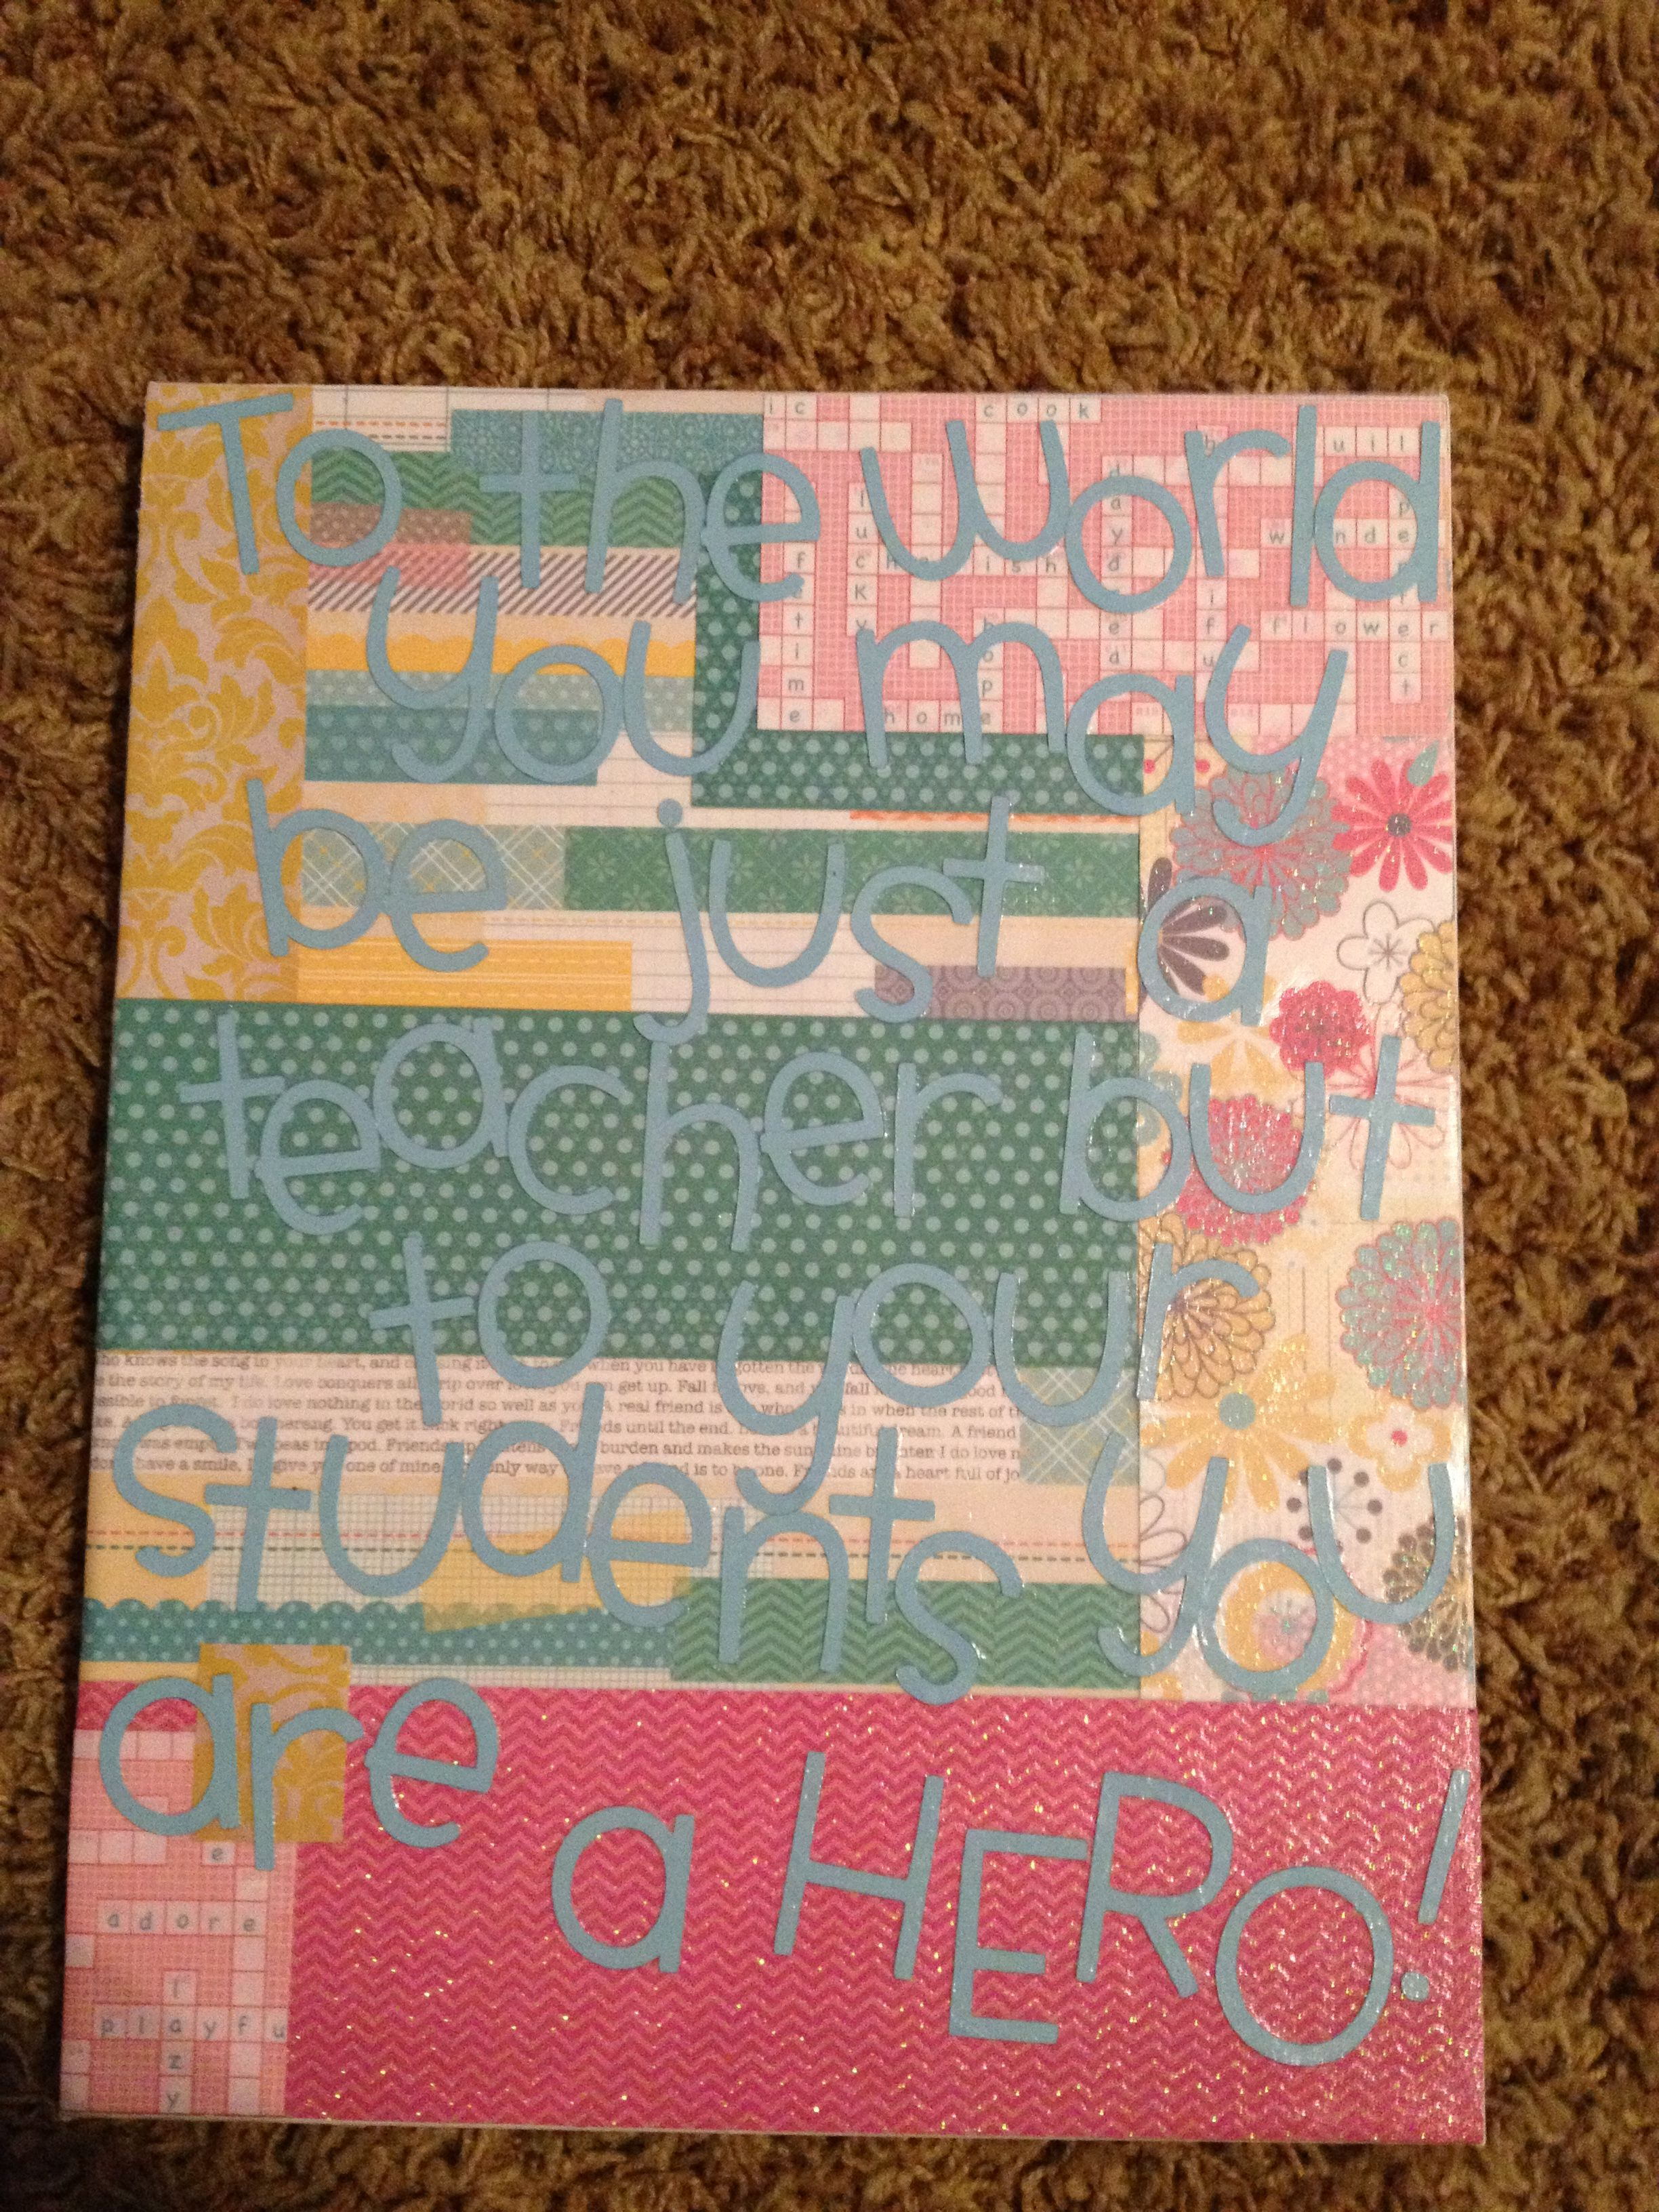 Diy canvas art i just used scrapbook paper and mod podge